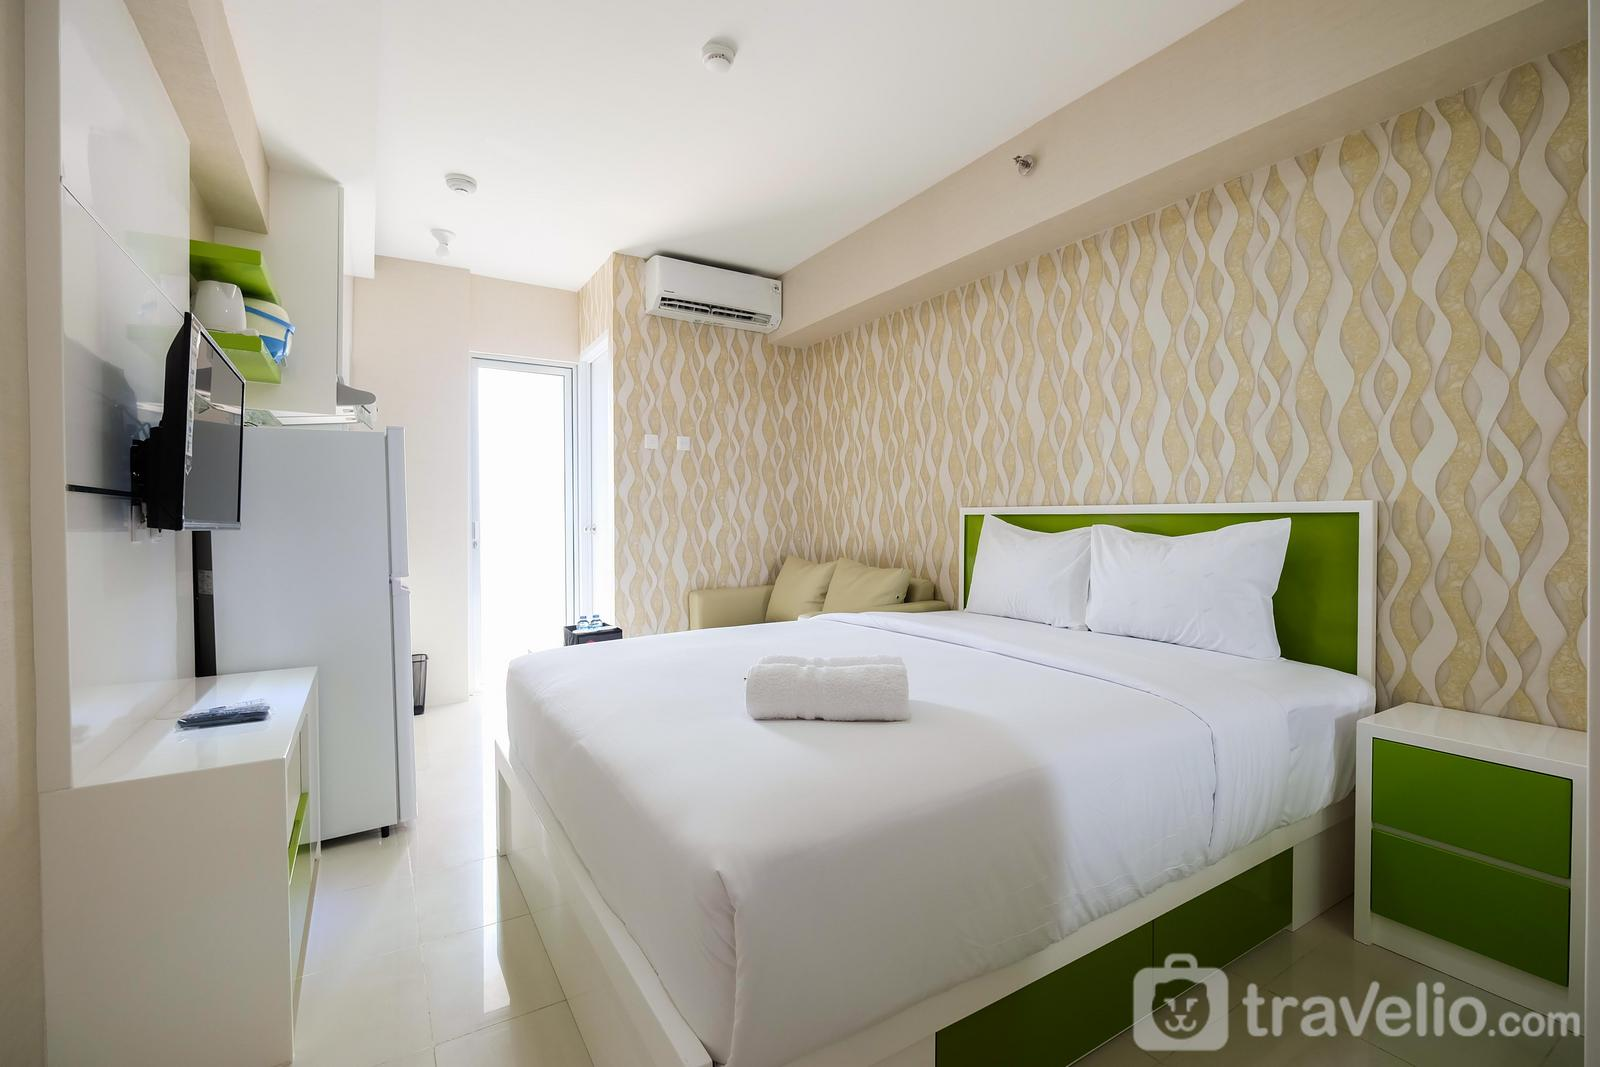 Bassura City Cipinang - Modern Studio Bassura City Apartment By Travelio